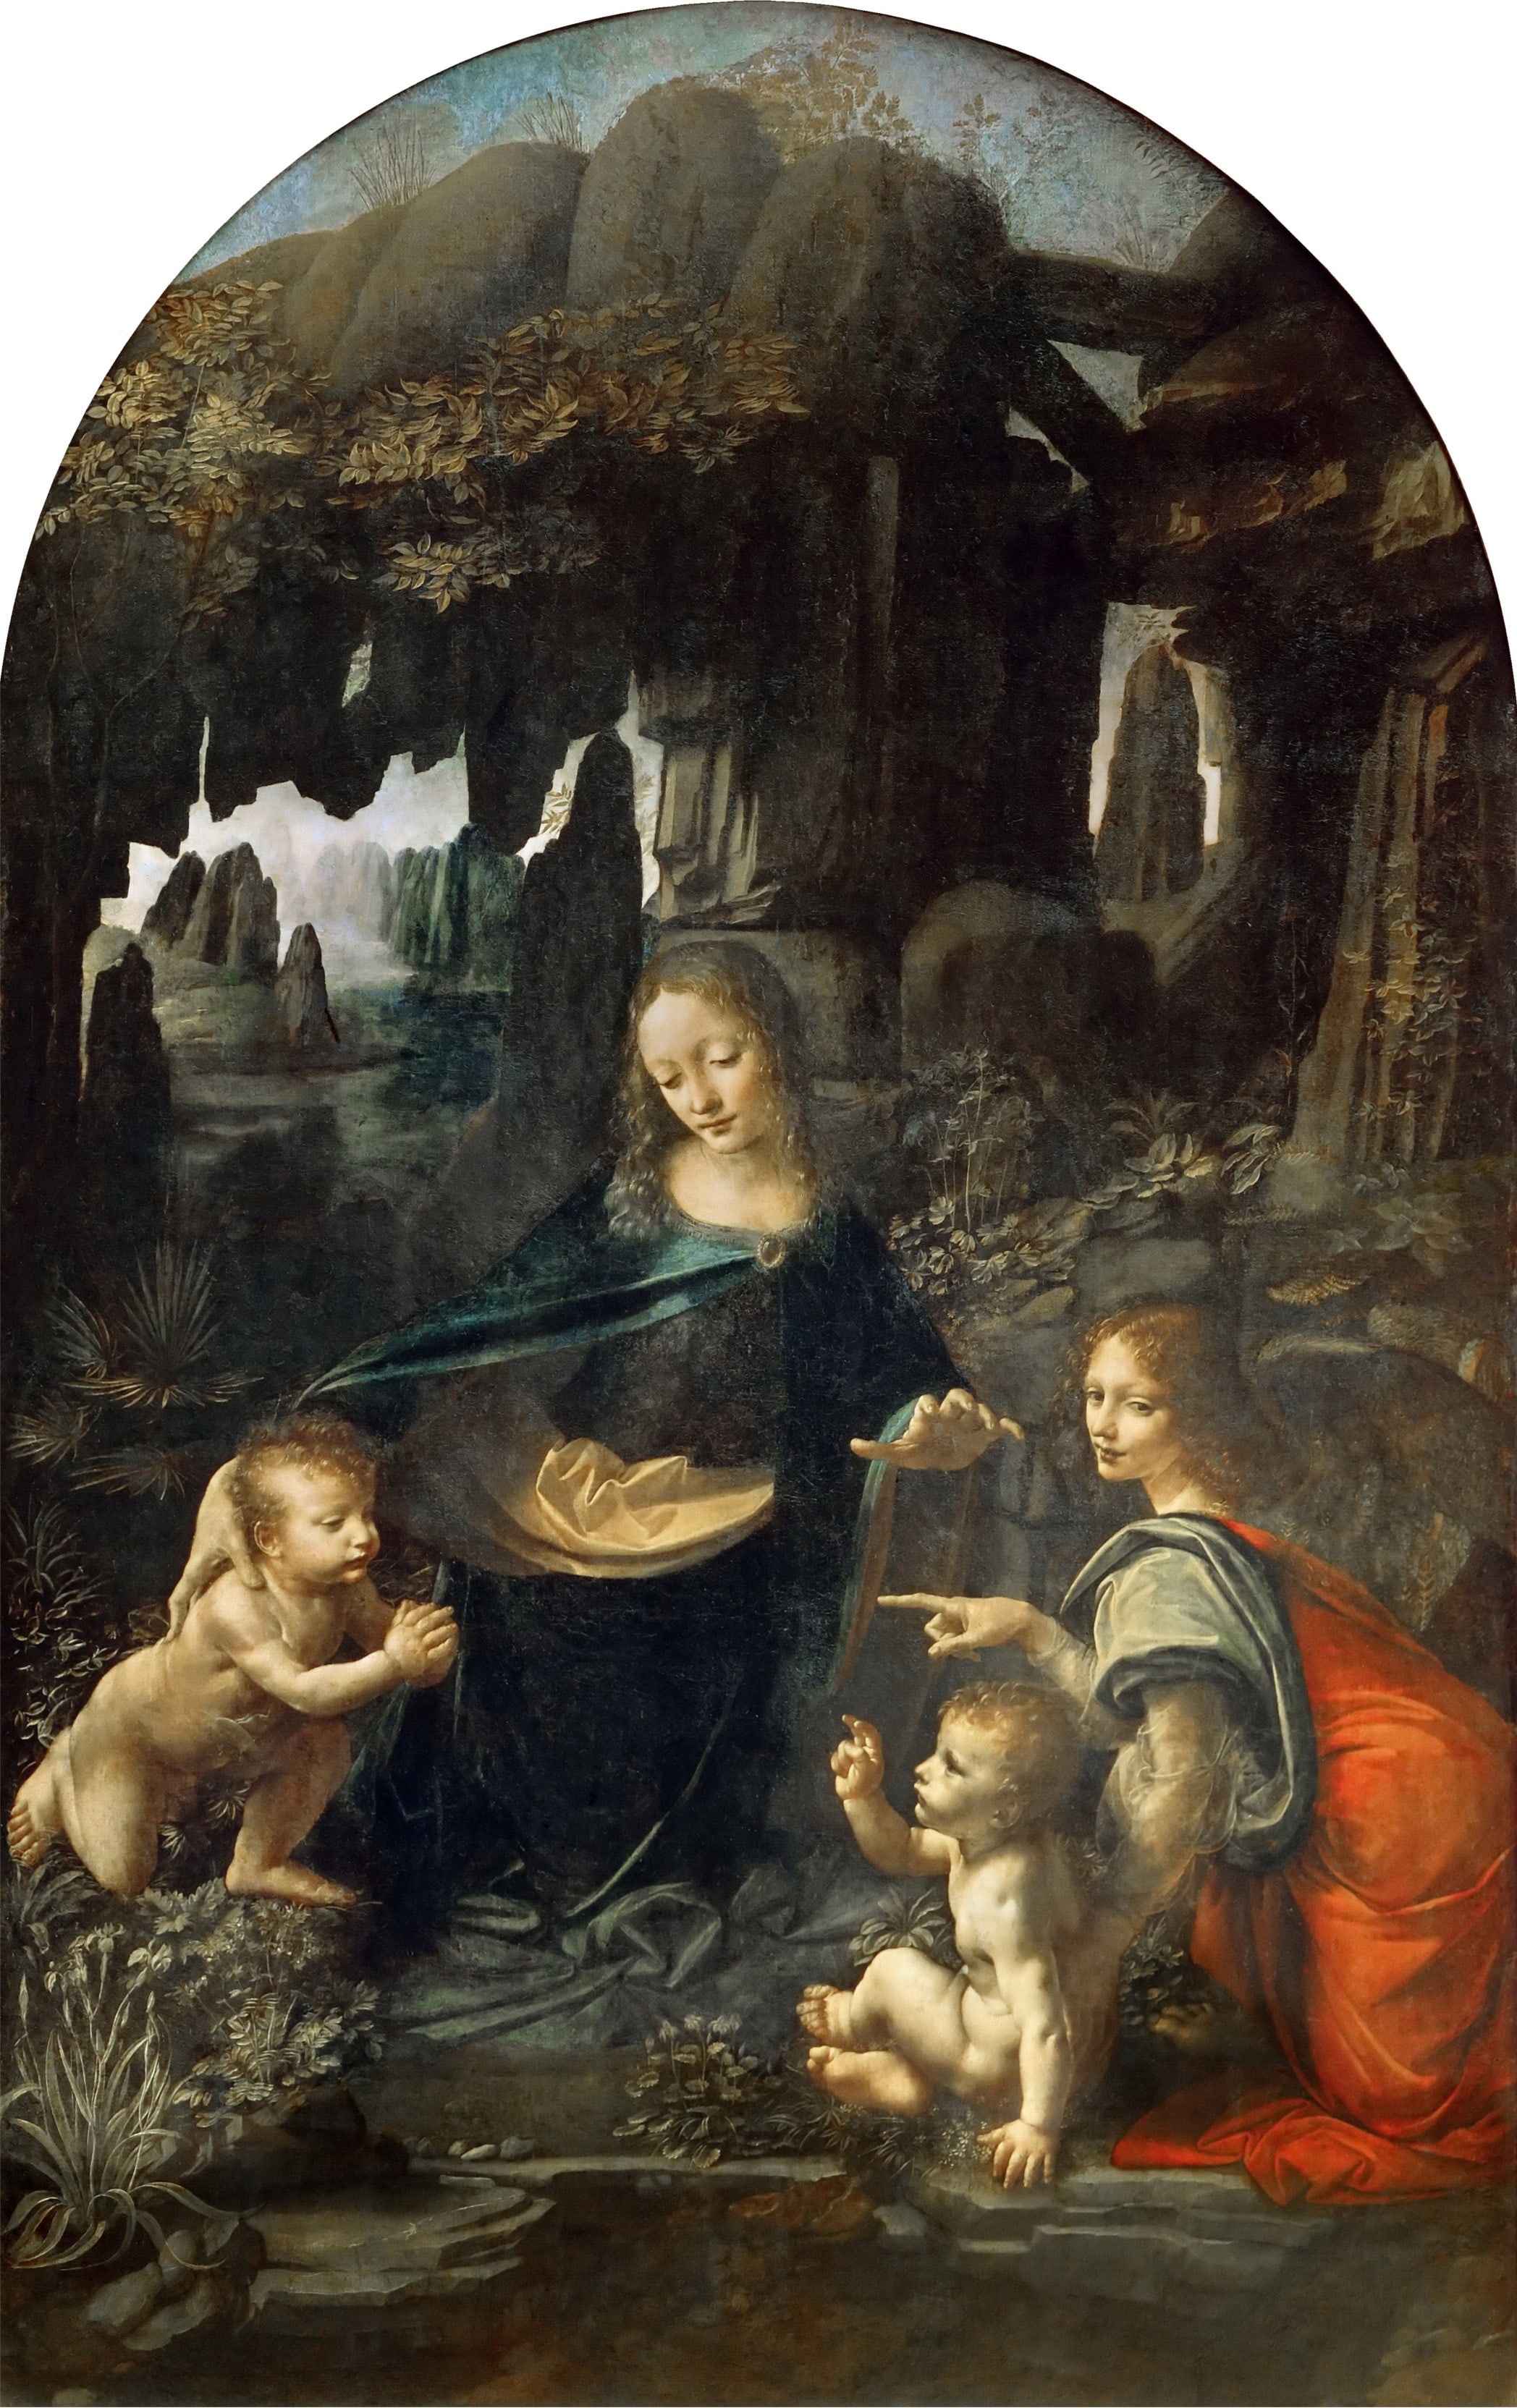 an analysis of madonna and child and flowers still life displayed at the art museum at the getty cen